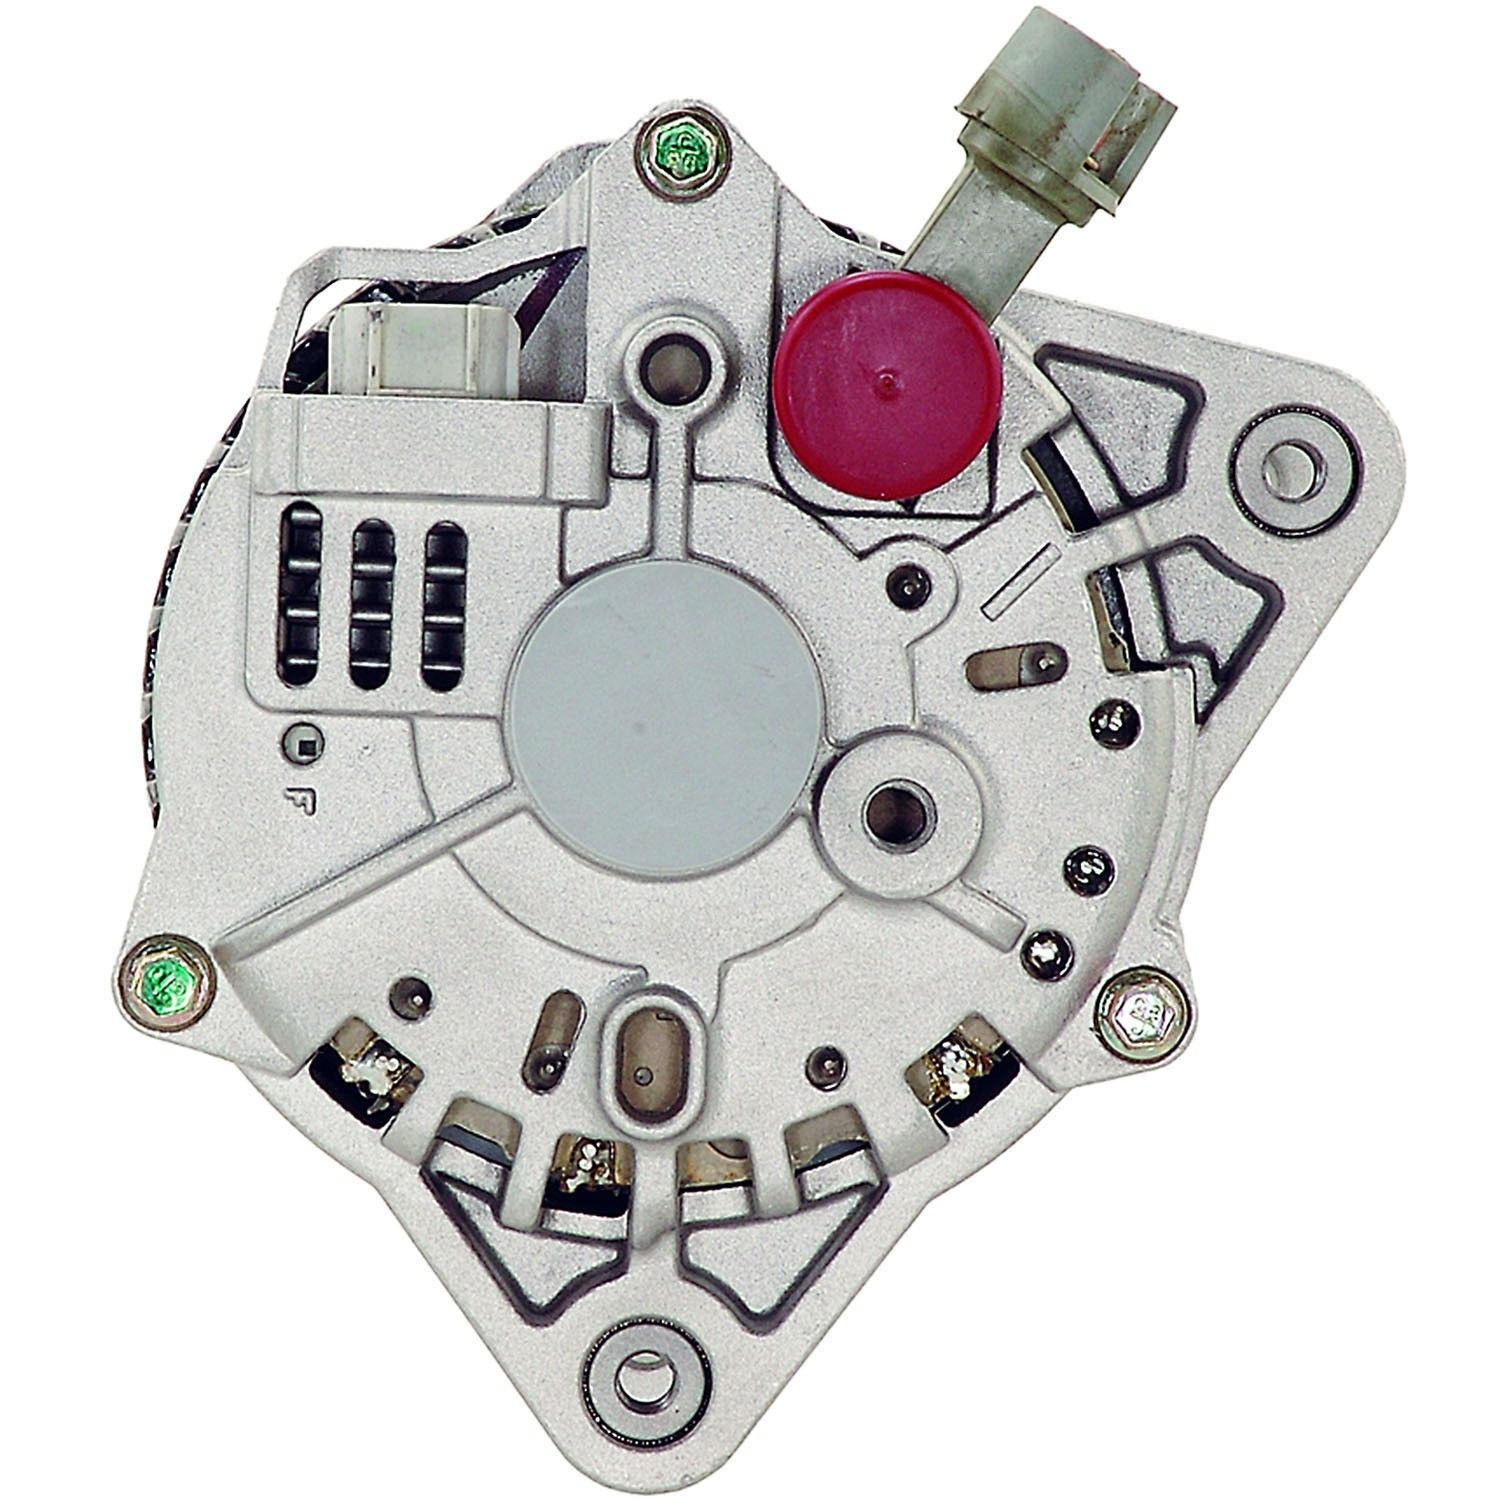 Ford Focus Alternator Replacement Denso Mpa Motorcraft Remy Tyc 2004 Wiring 2000 4 Cyl 20l 210 5347 110 Amp First Time Fit